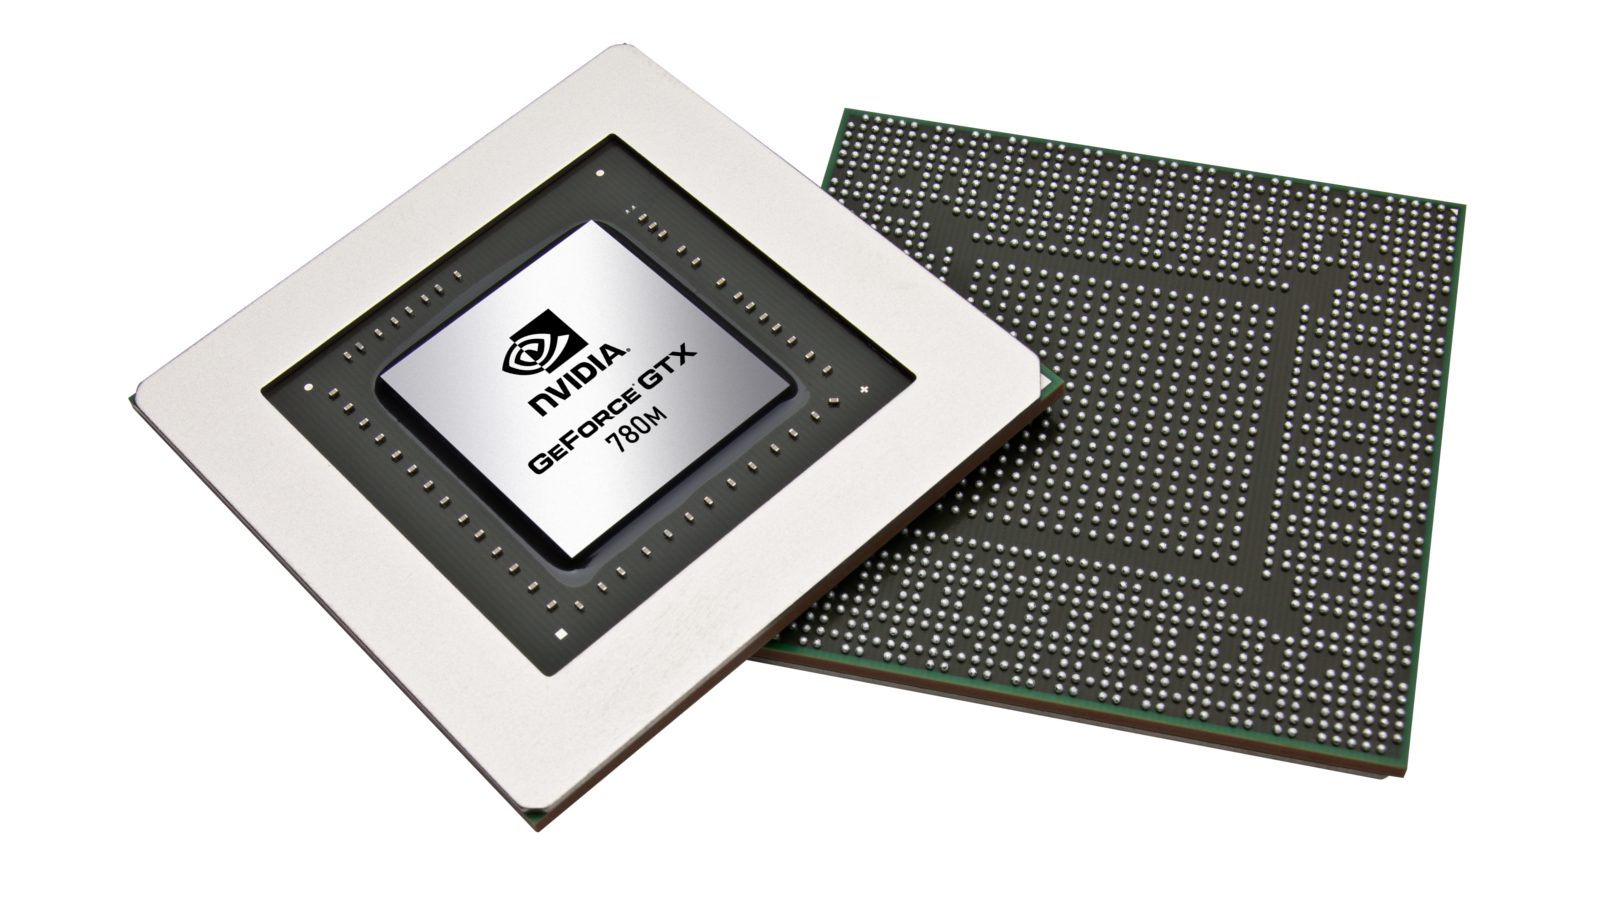 Nvidia geforce gtx 780m the new best graphics card for your laptop